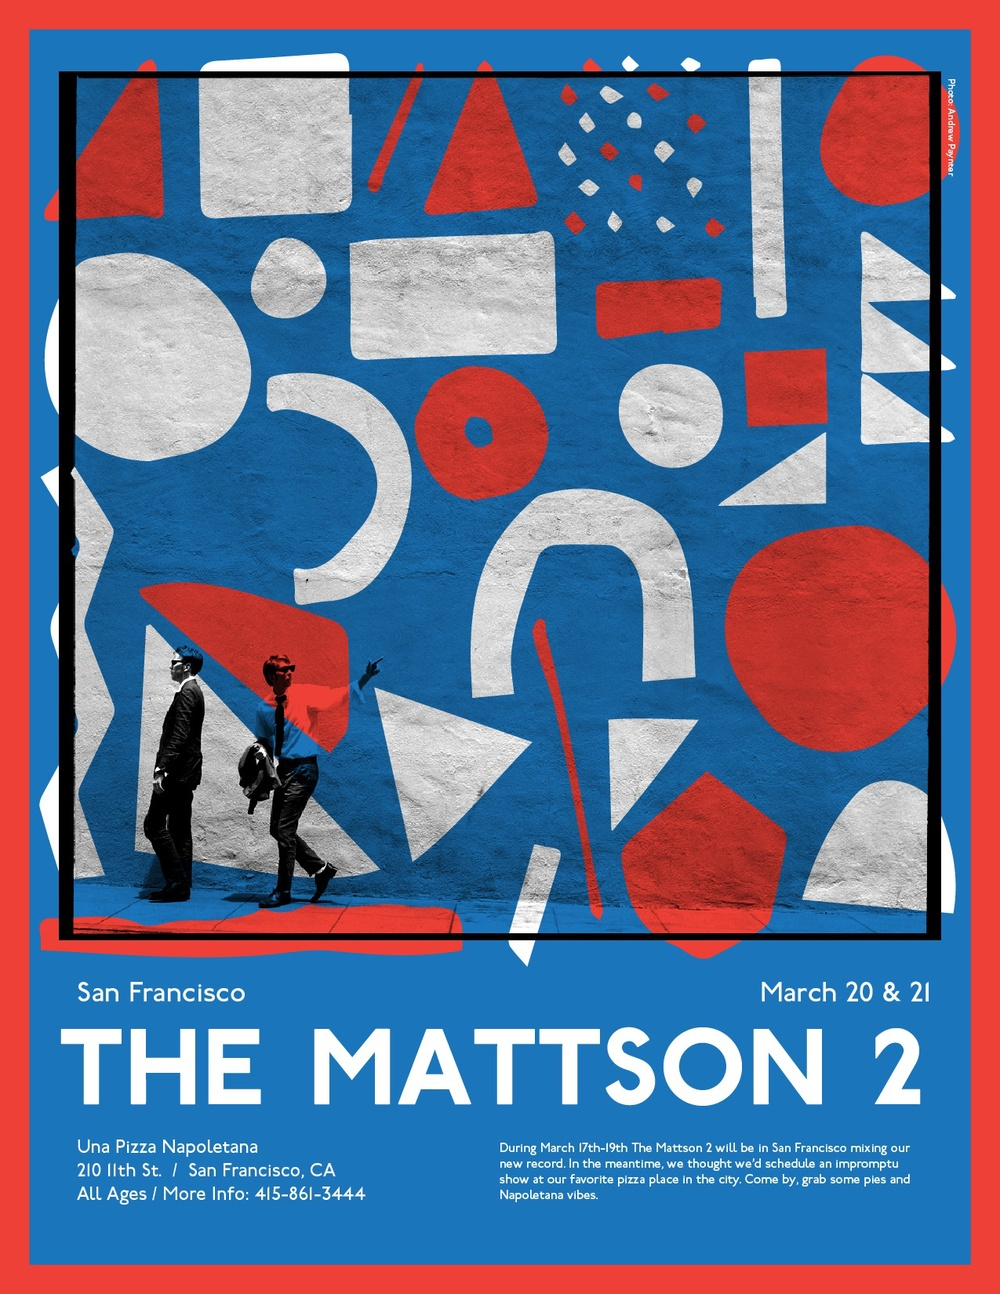 Thursday March 20th and Friday March 21st  Mattson 2 perform and eat pizza at 7pm. Flier designs by Pete Panciera